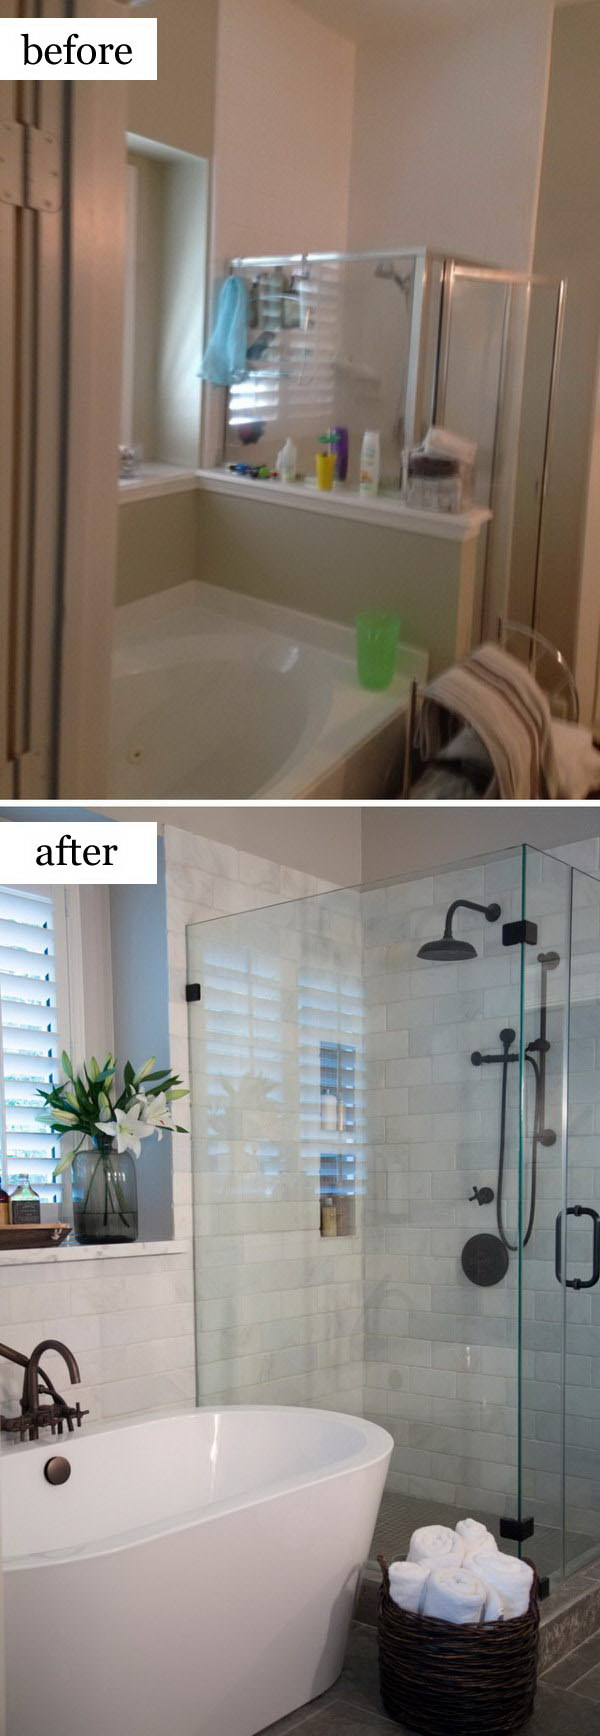 Before and After Makeovers: 20+ Most Beautiful Bathroom ... on Bathroom Renovation Ideas  id=41017